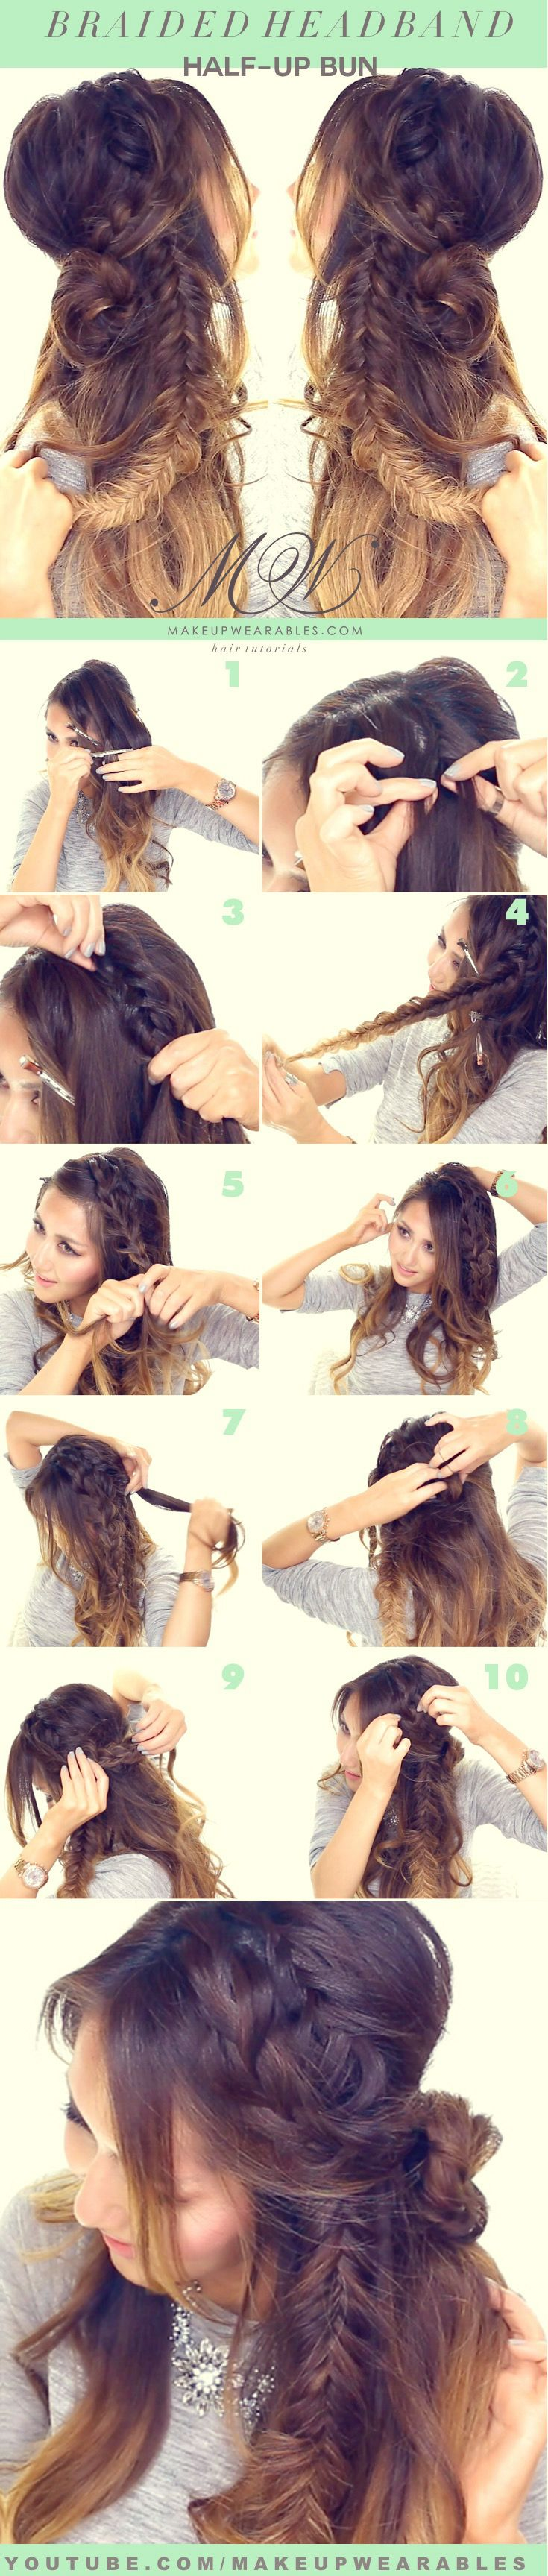 The 430 best half up half down hair images on Pinterest